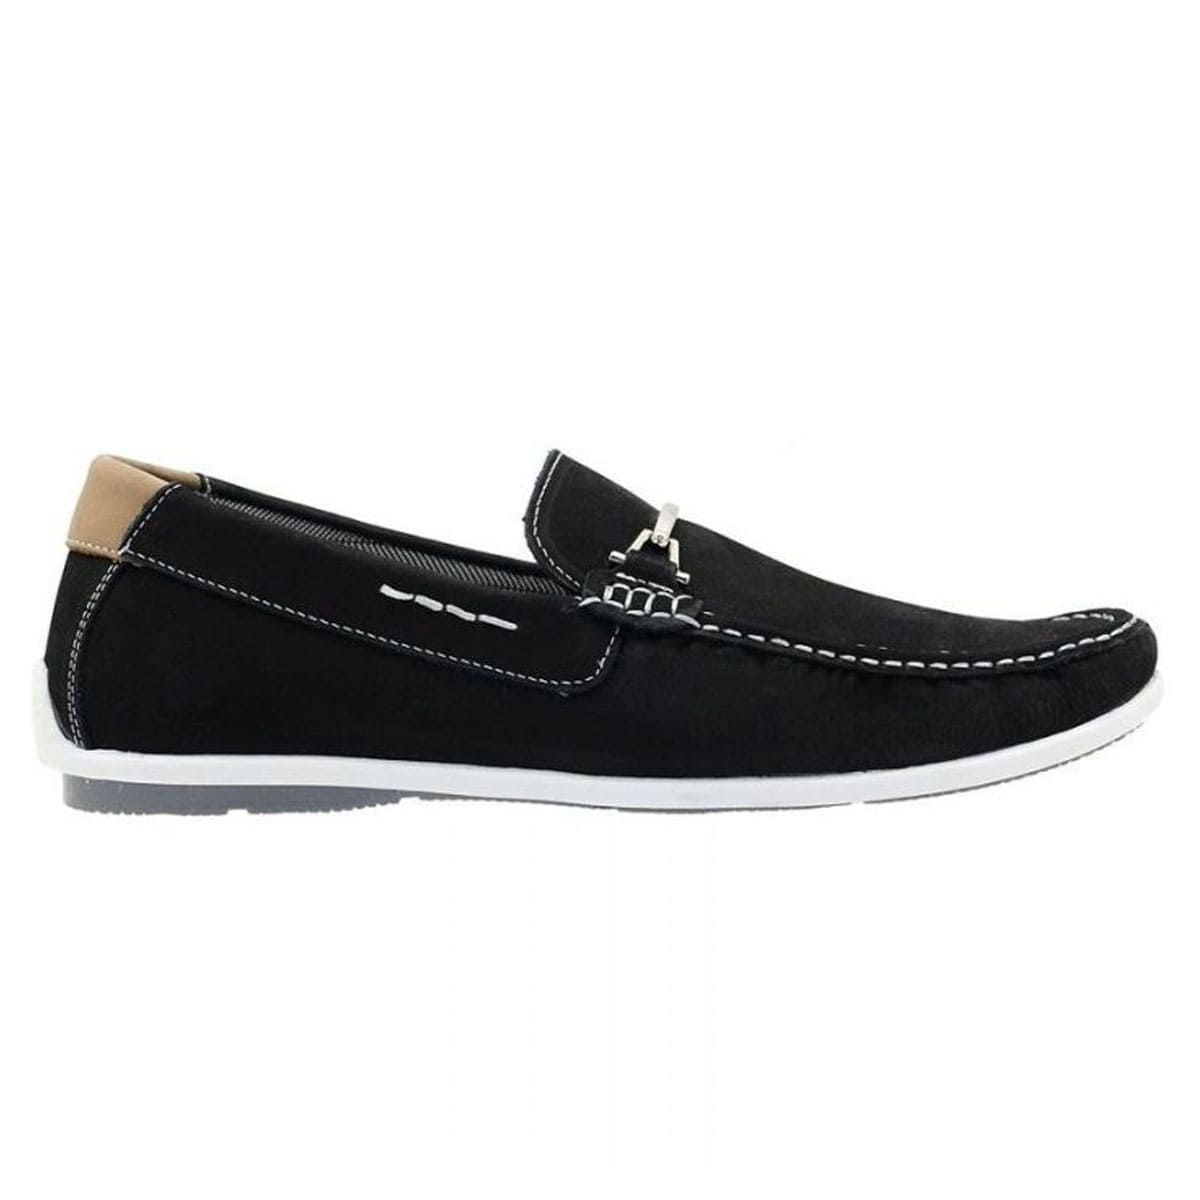 Mocassim dockside masculino Atron Shoes preto 571